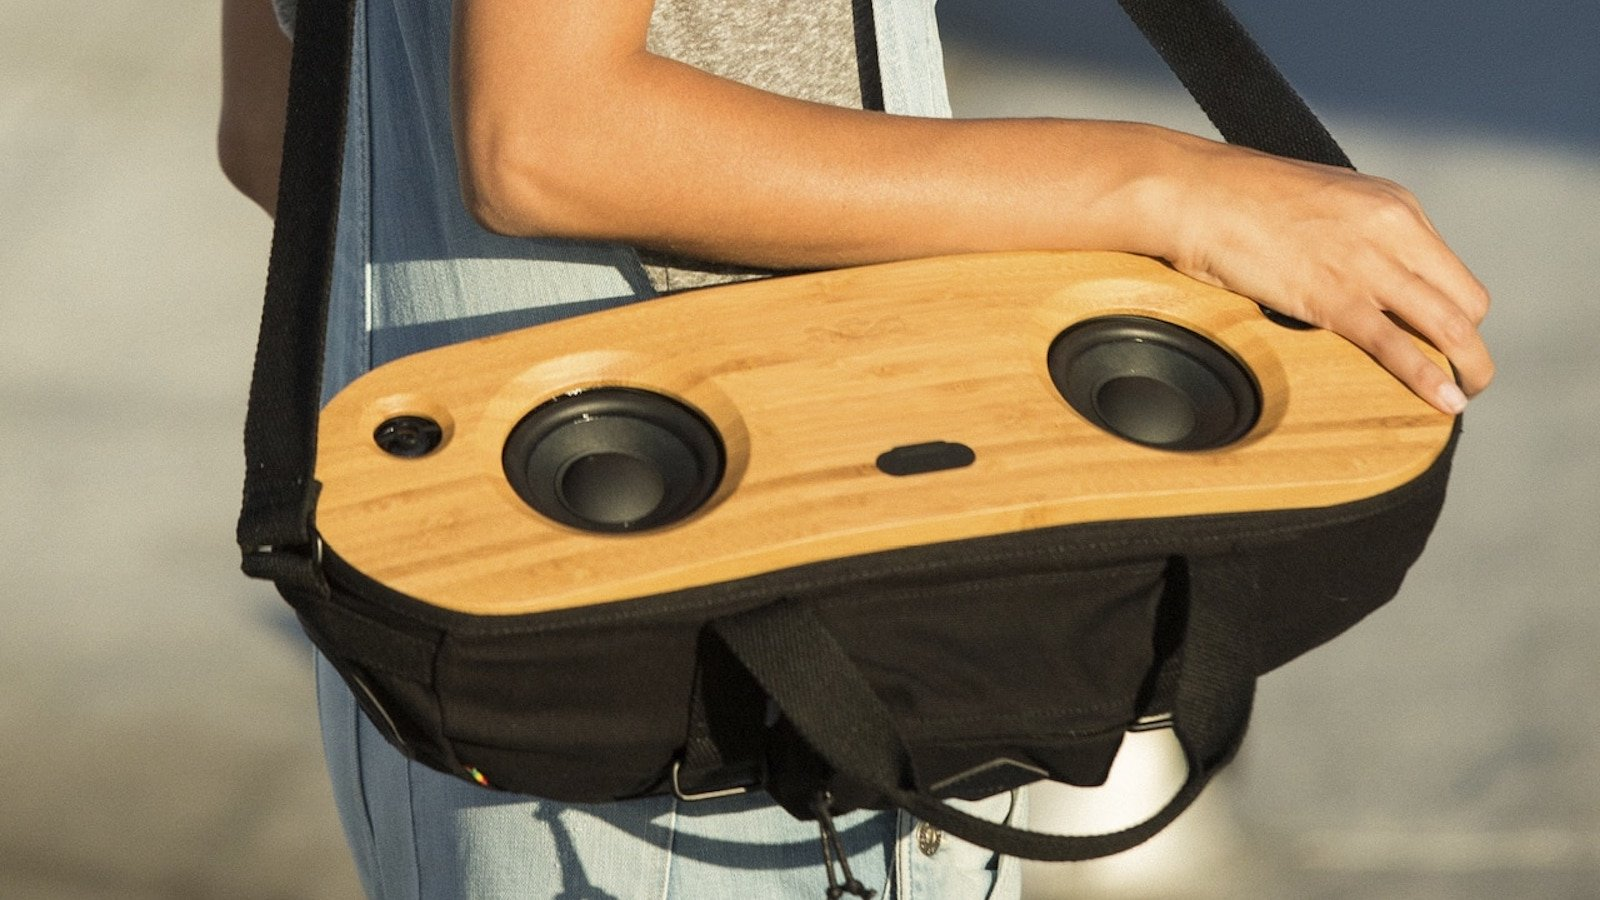 House of Marley Bag Of Riddim 2 portable audio system can be worn while you're on the go